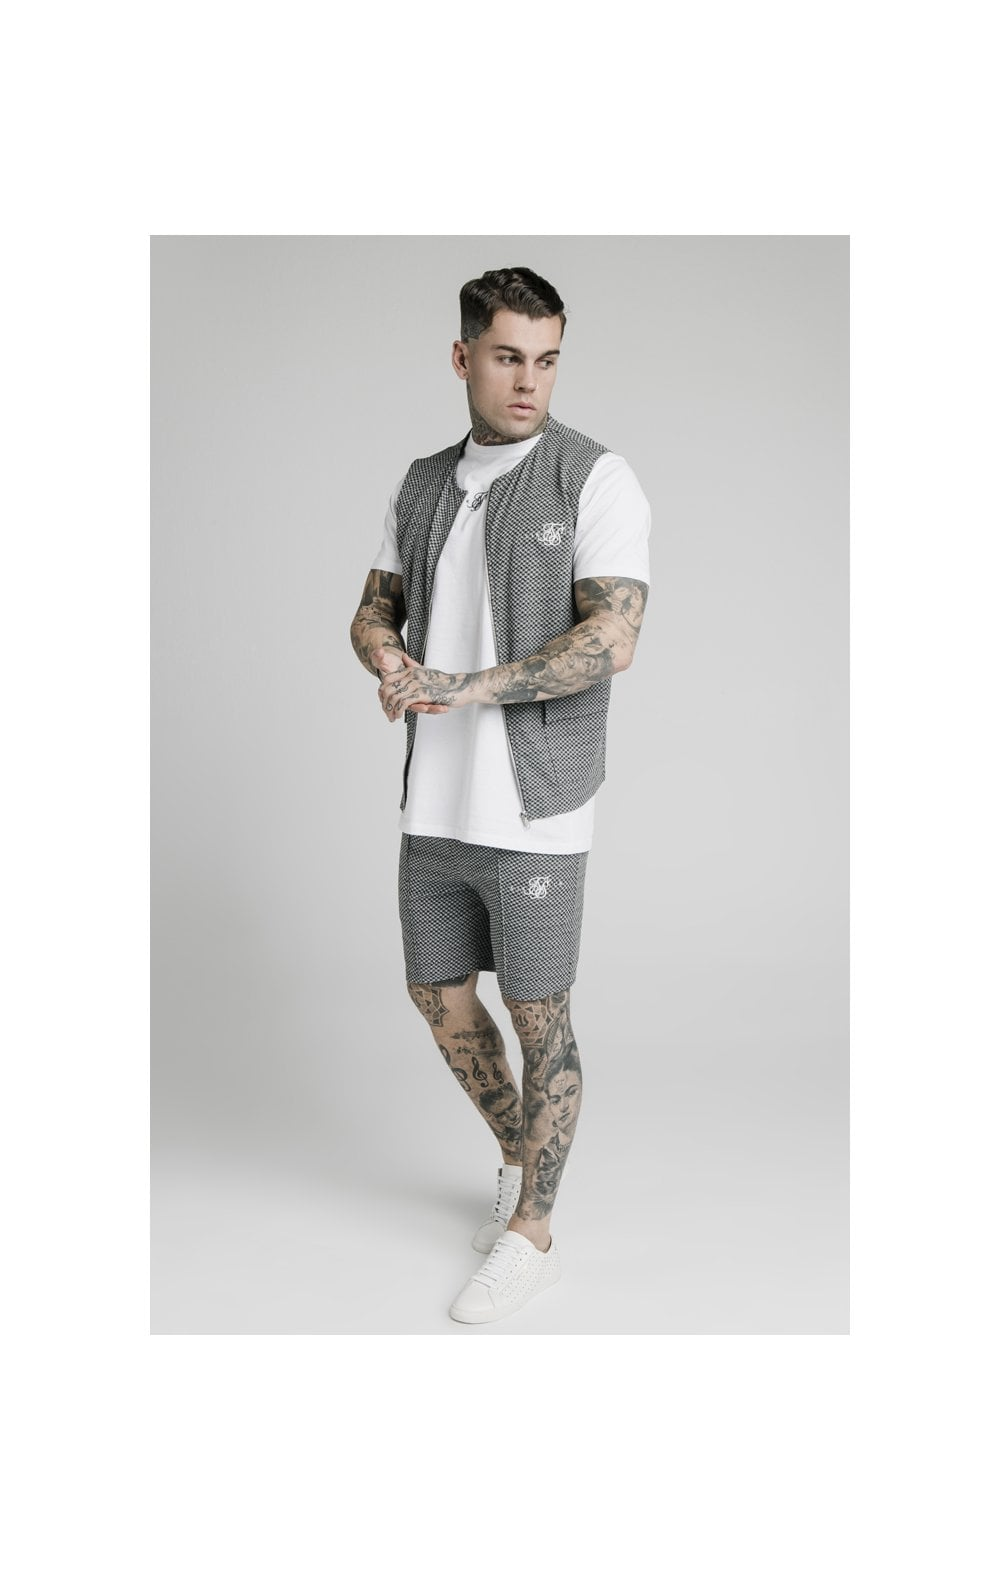 SikSilk Smart Wear Vest - Black & White Dogtooth (3)